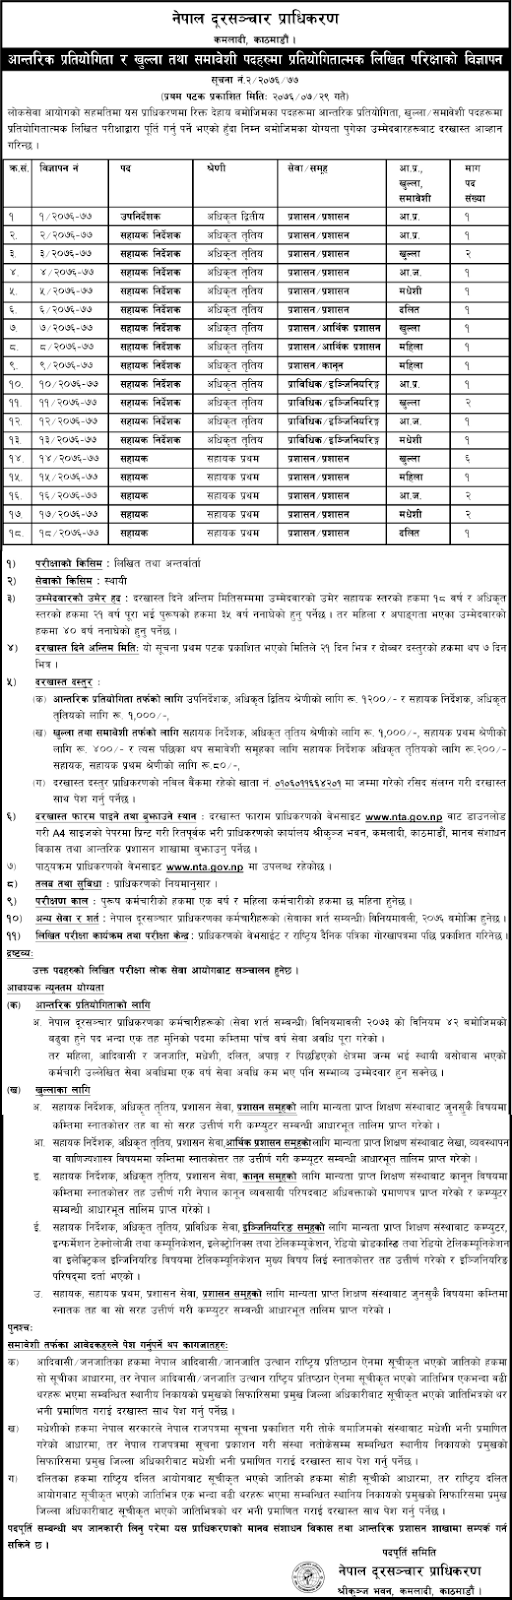 Nepal Telecommunications Authority (NTA) Vacancy Announcement